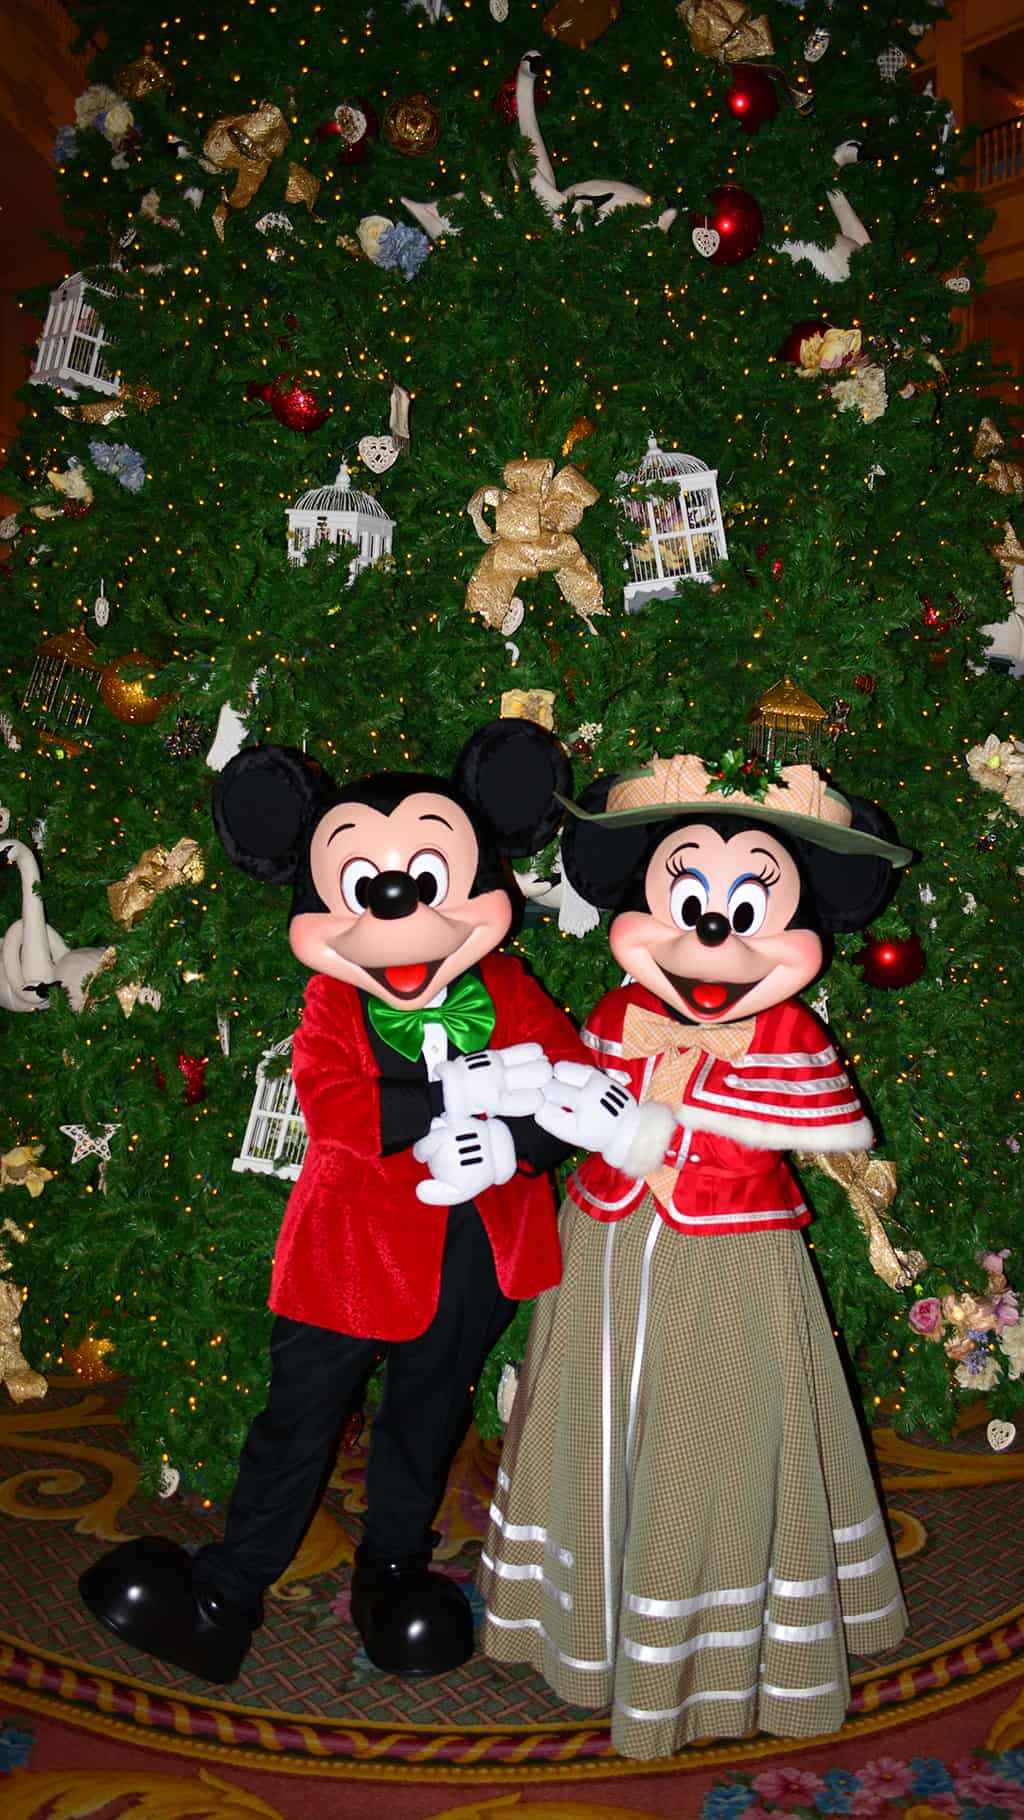 Walt Disney World Grand Floridian Christmas decor Christmas Characters Mickey and Minnie (42)